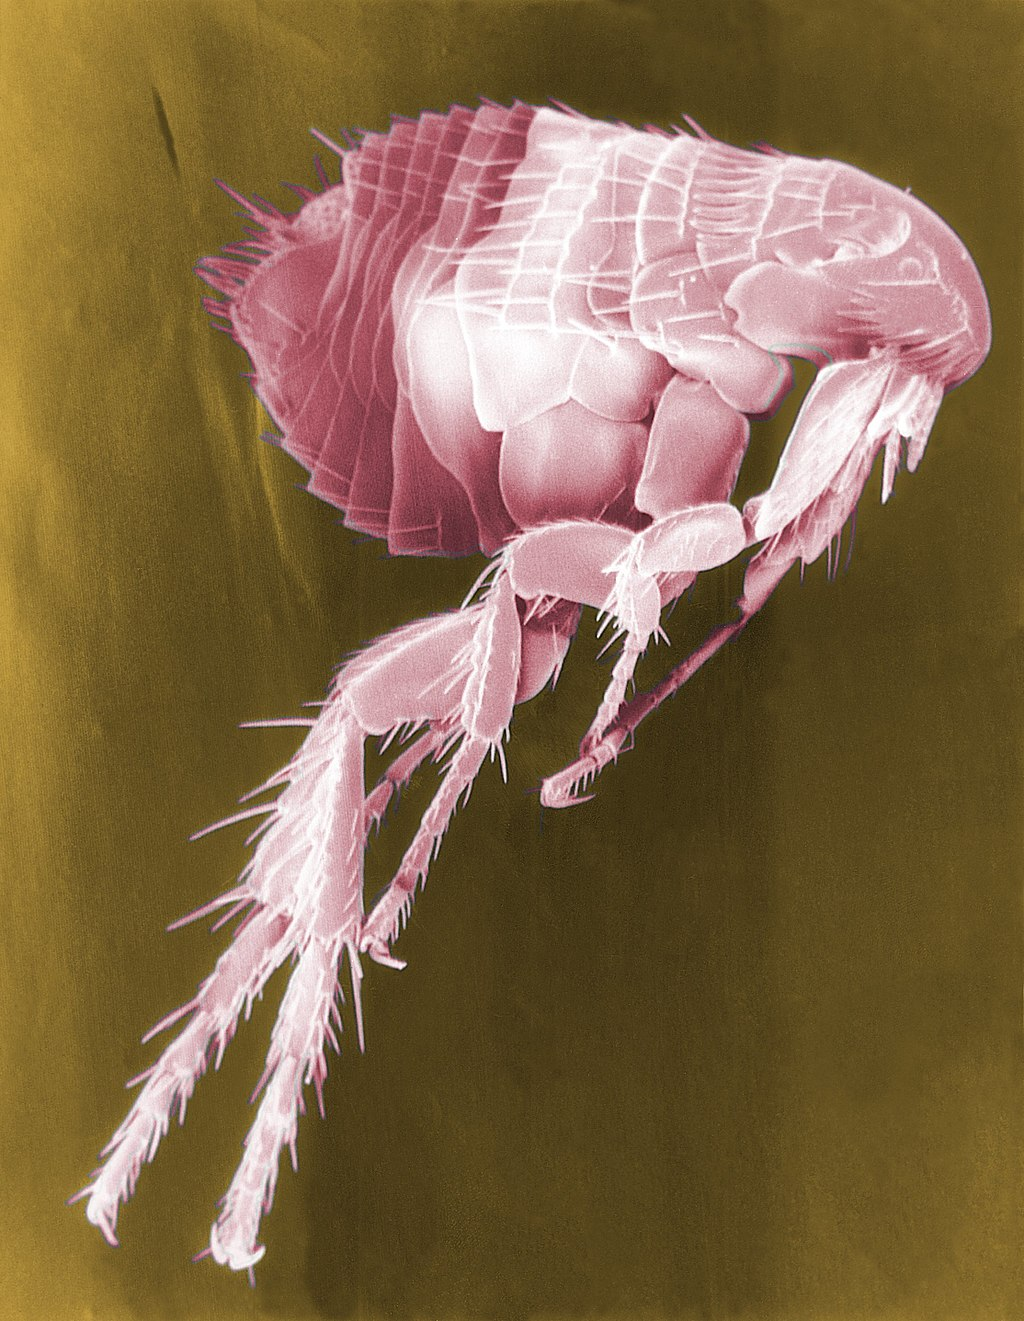 Flea Scanning Electron Micrograph False Color.jpg